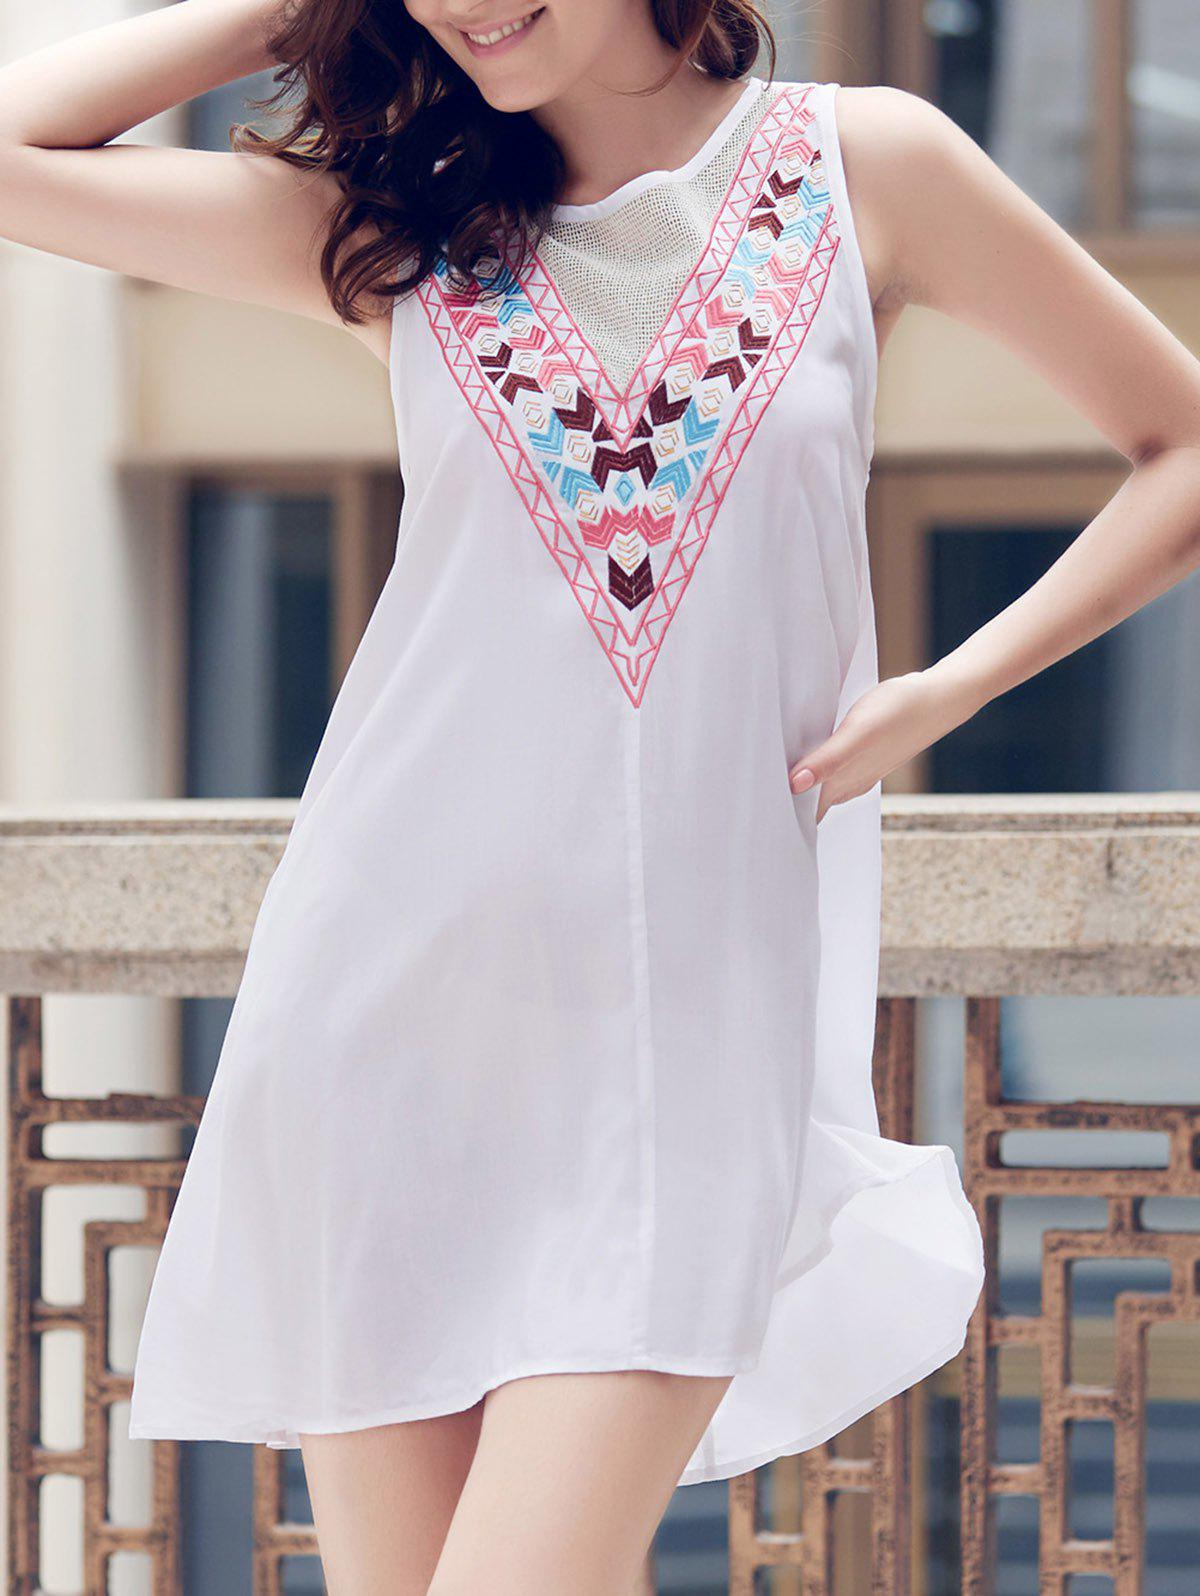 Fashionable Women's Jewel Neck Sleeveless Embroidered A-Line Dress - WHITE S